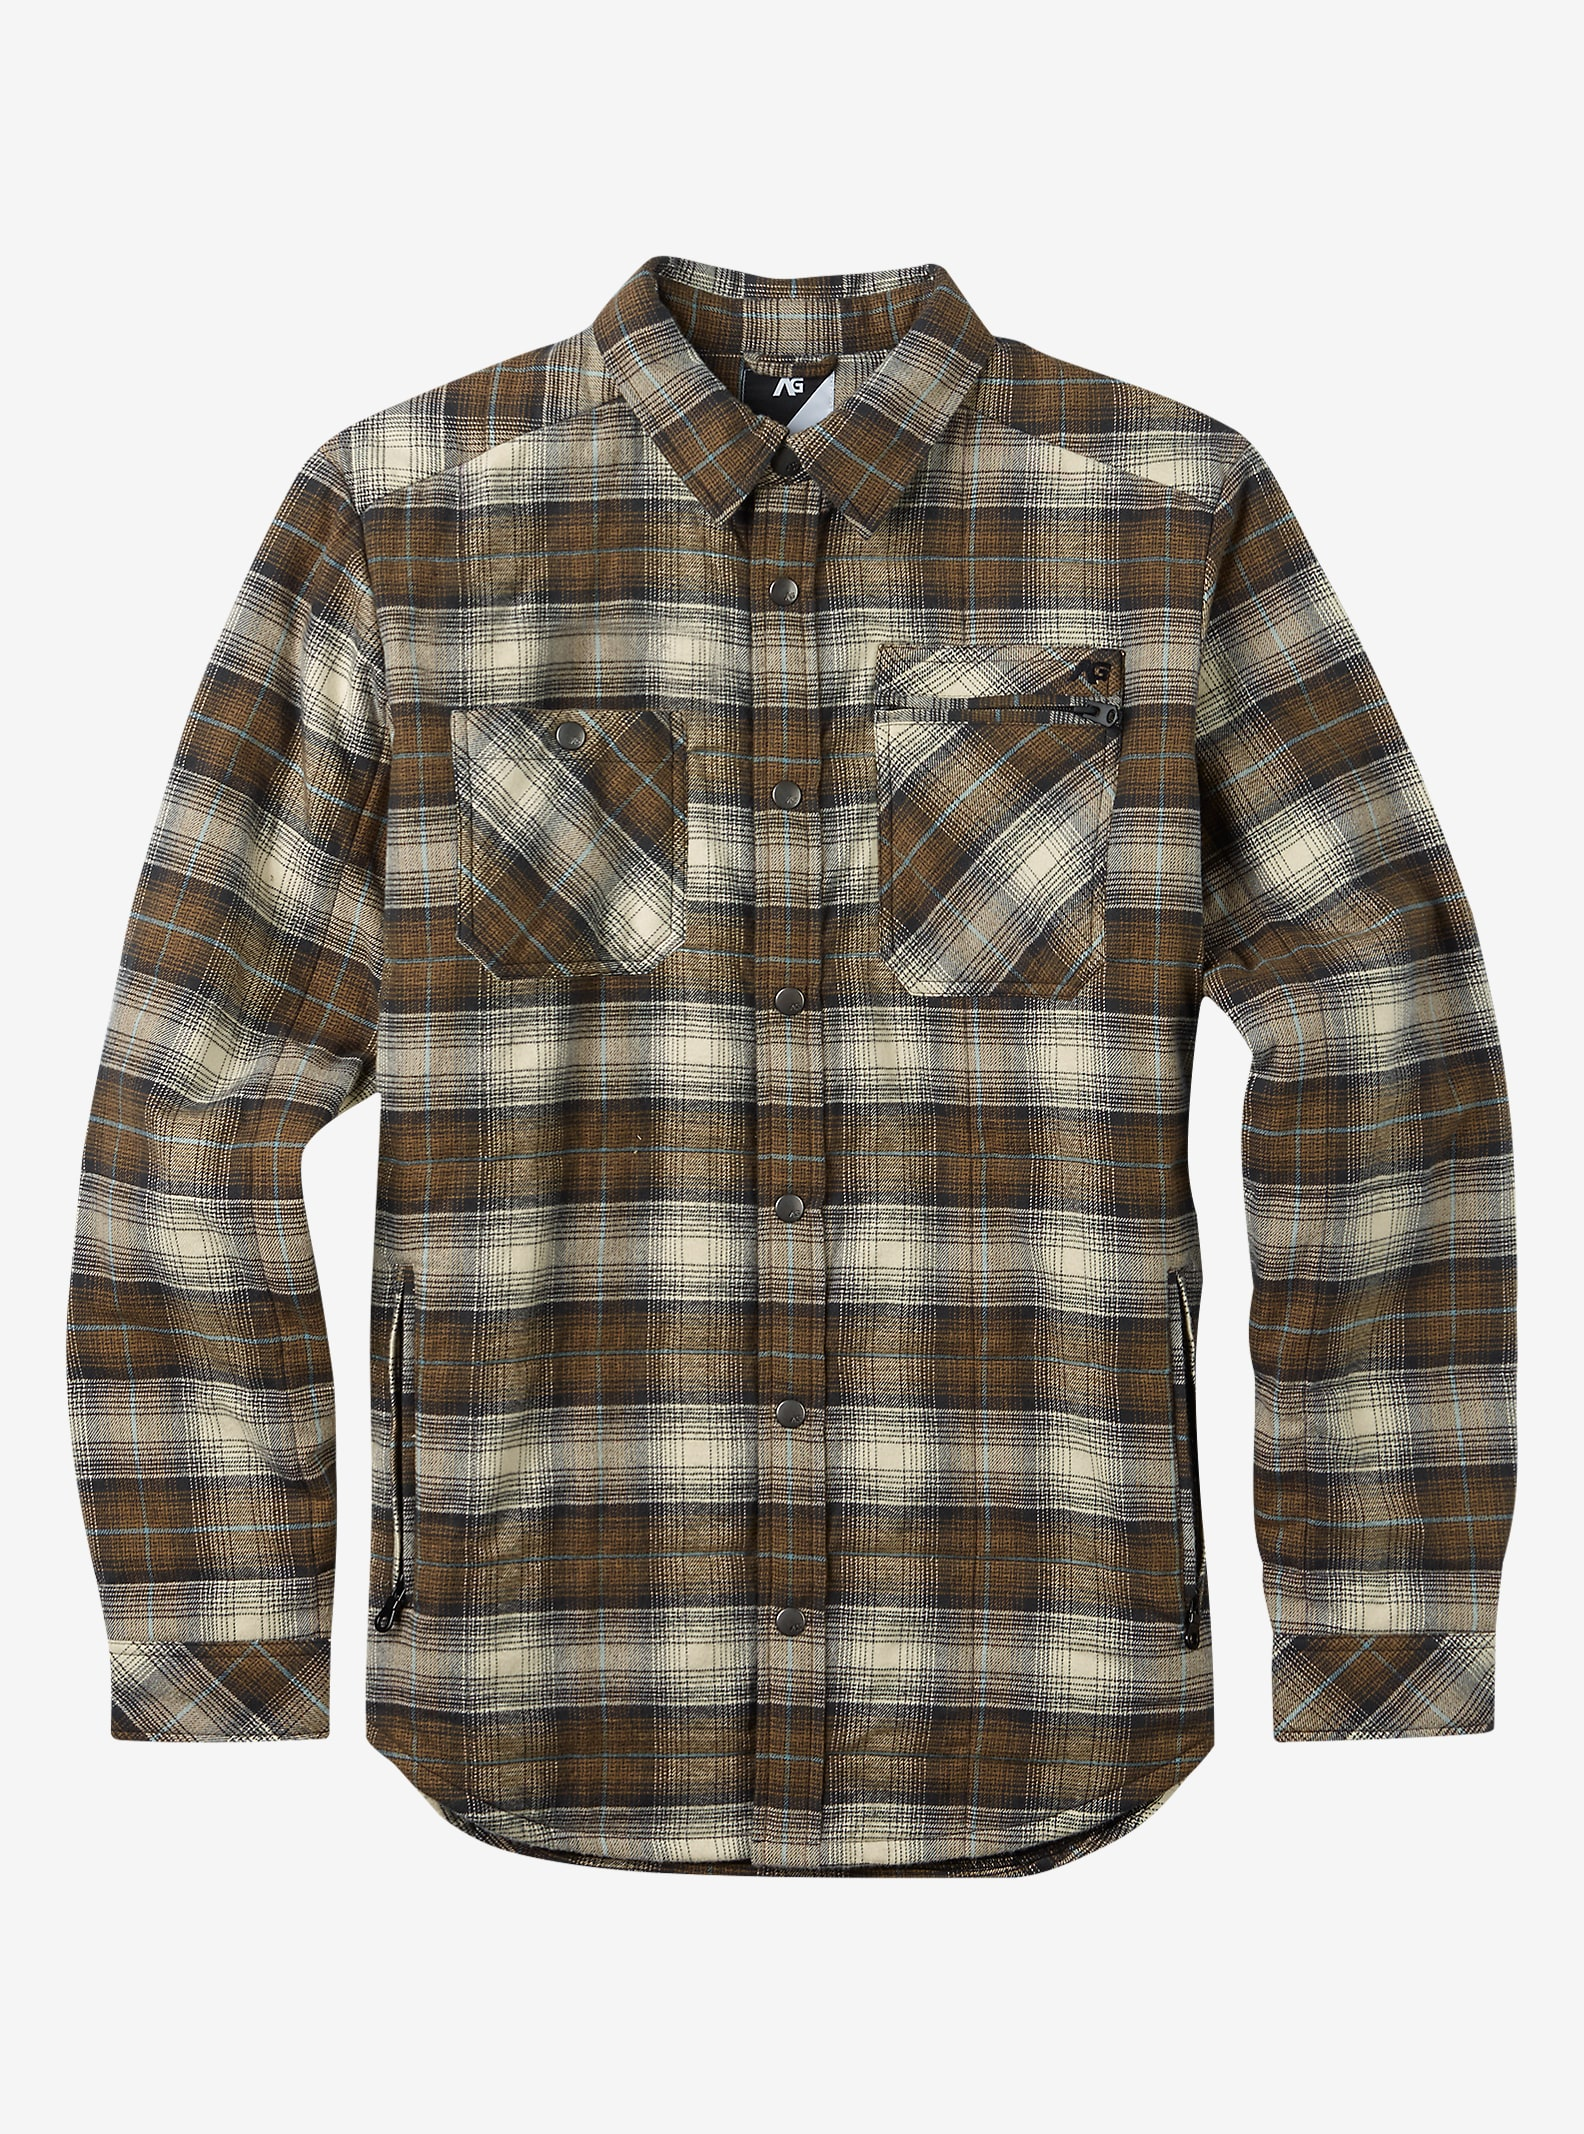 Analog Bowery Quilted Flannel shown in Masonite